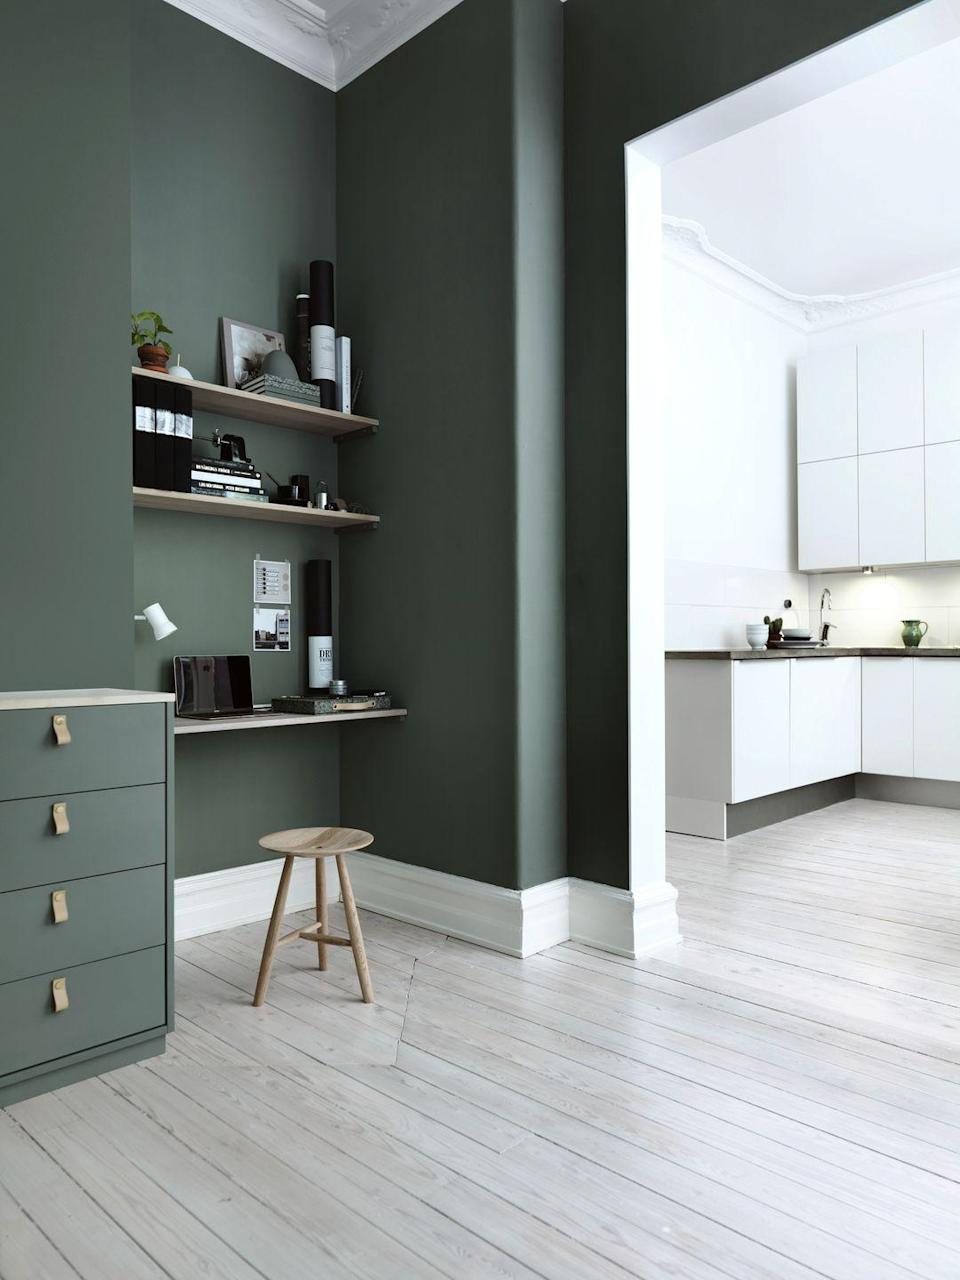 <p>This unobtrusive study is the ideal space for part-time homeworkers to catch up on paperwork. It's wonderfully simple to create, too – simply build bookshelves and make sure you have enough plug sockets nearby. Swedish eco furniture brand Norrgavel uses a change in wall colour to mark out a work zone in this open-plan home.</p>